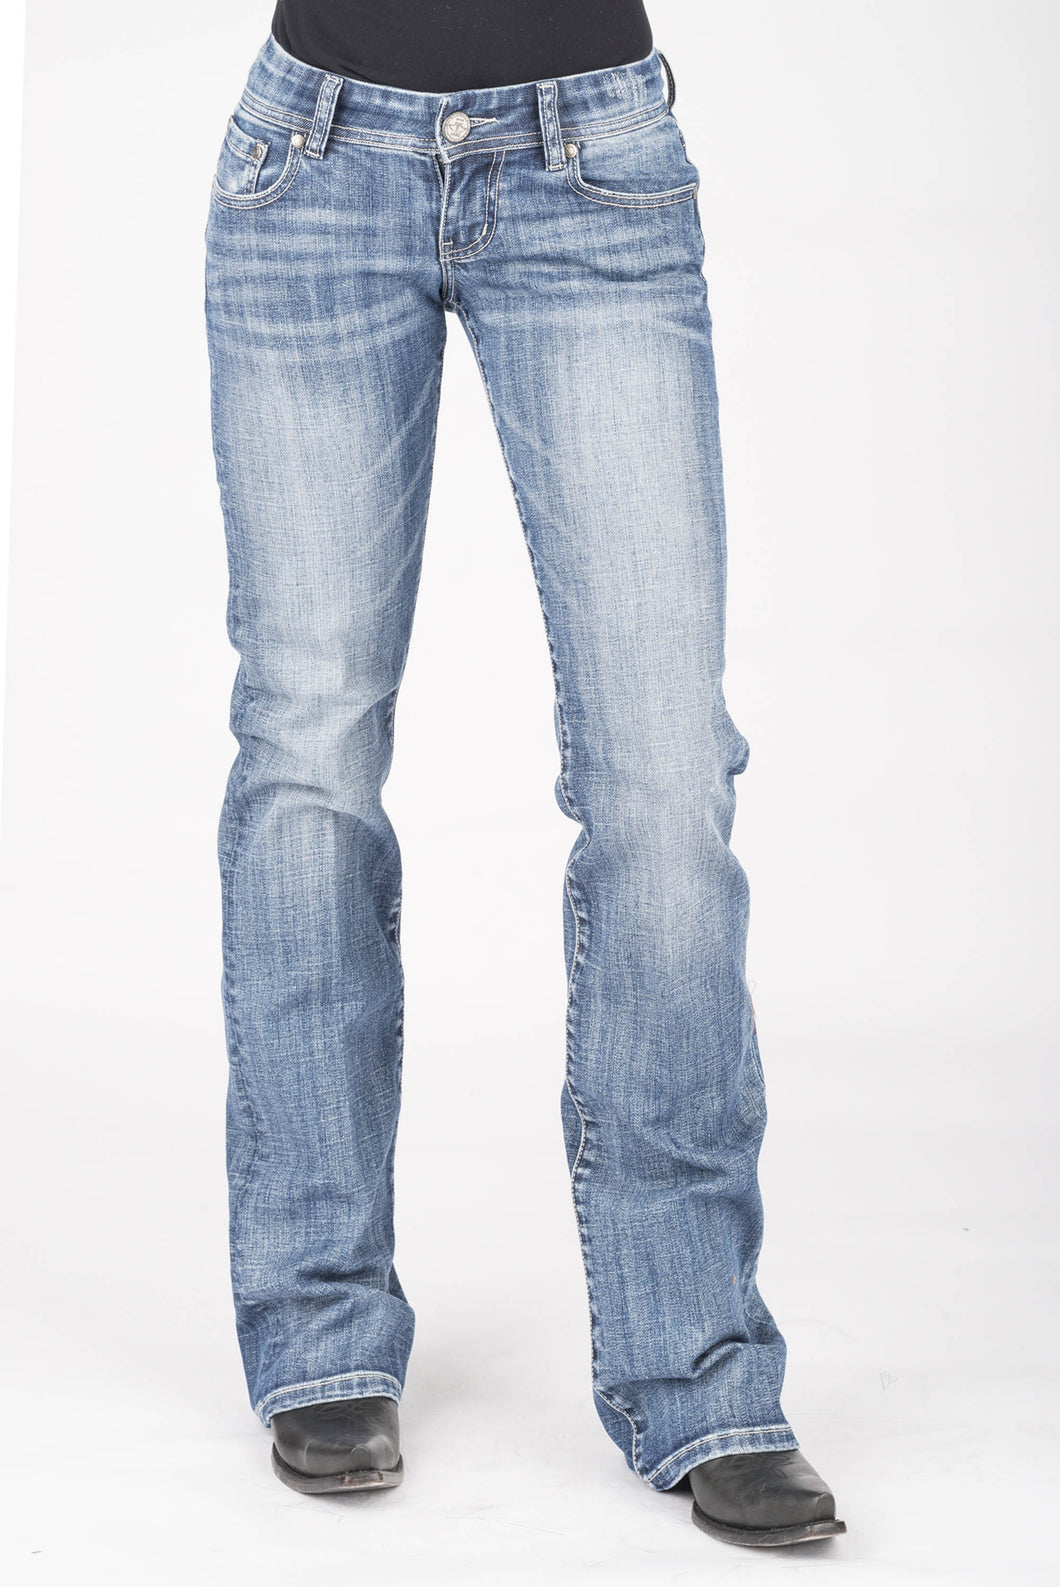 Tin Haul Gal's Jean Tinhaul Womens Jeans Raised Embroidred Line Deco Back Pkt